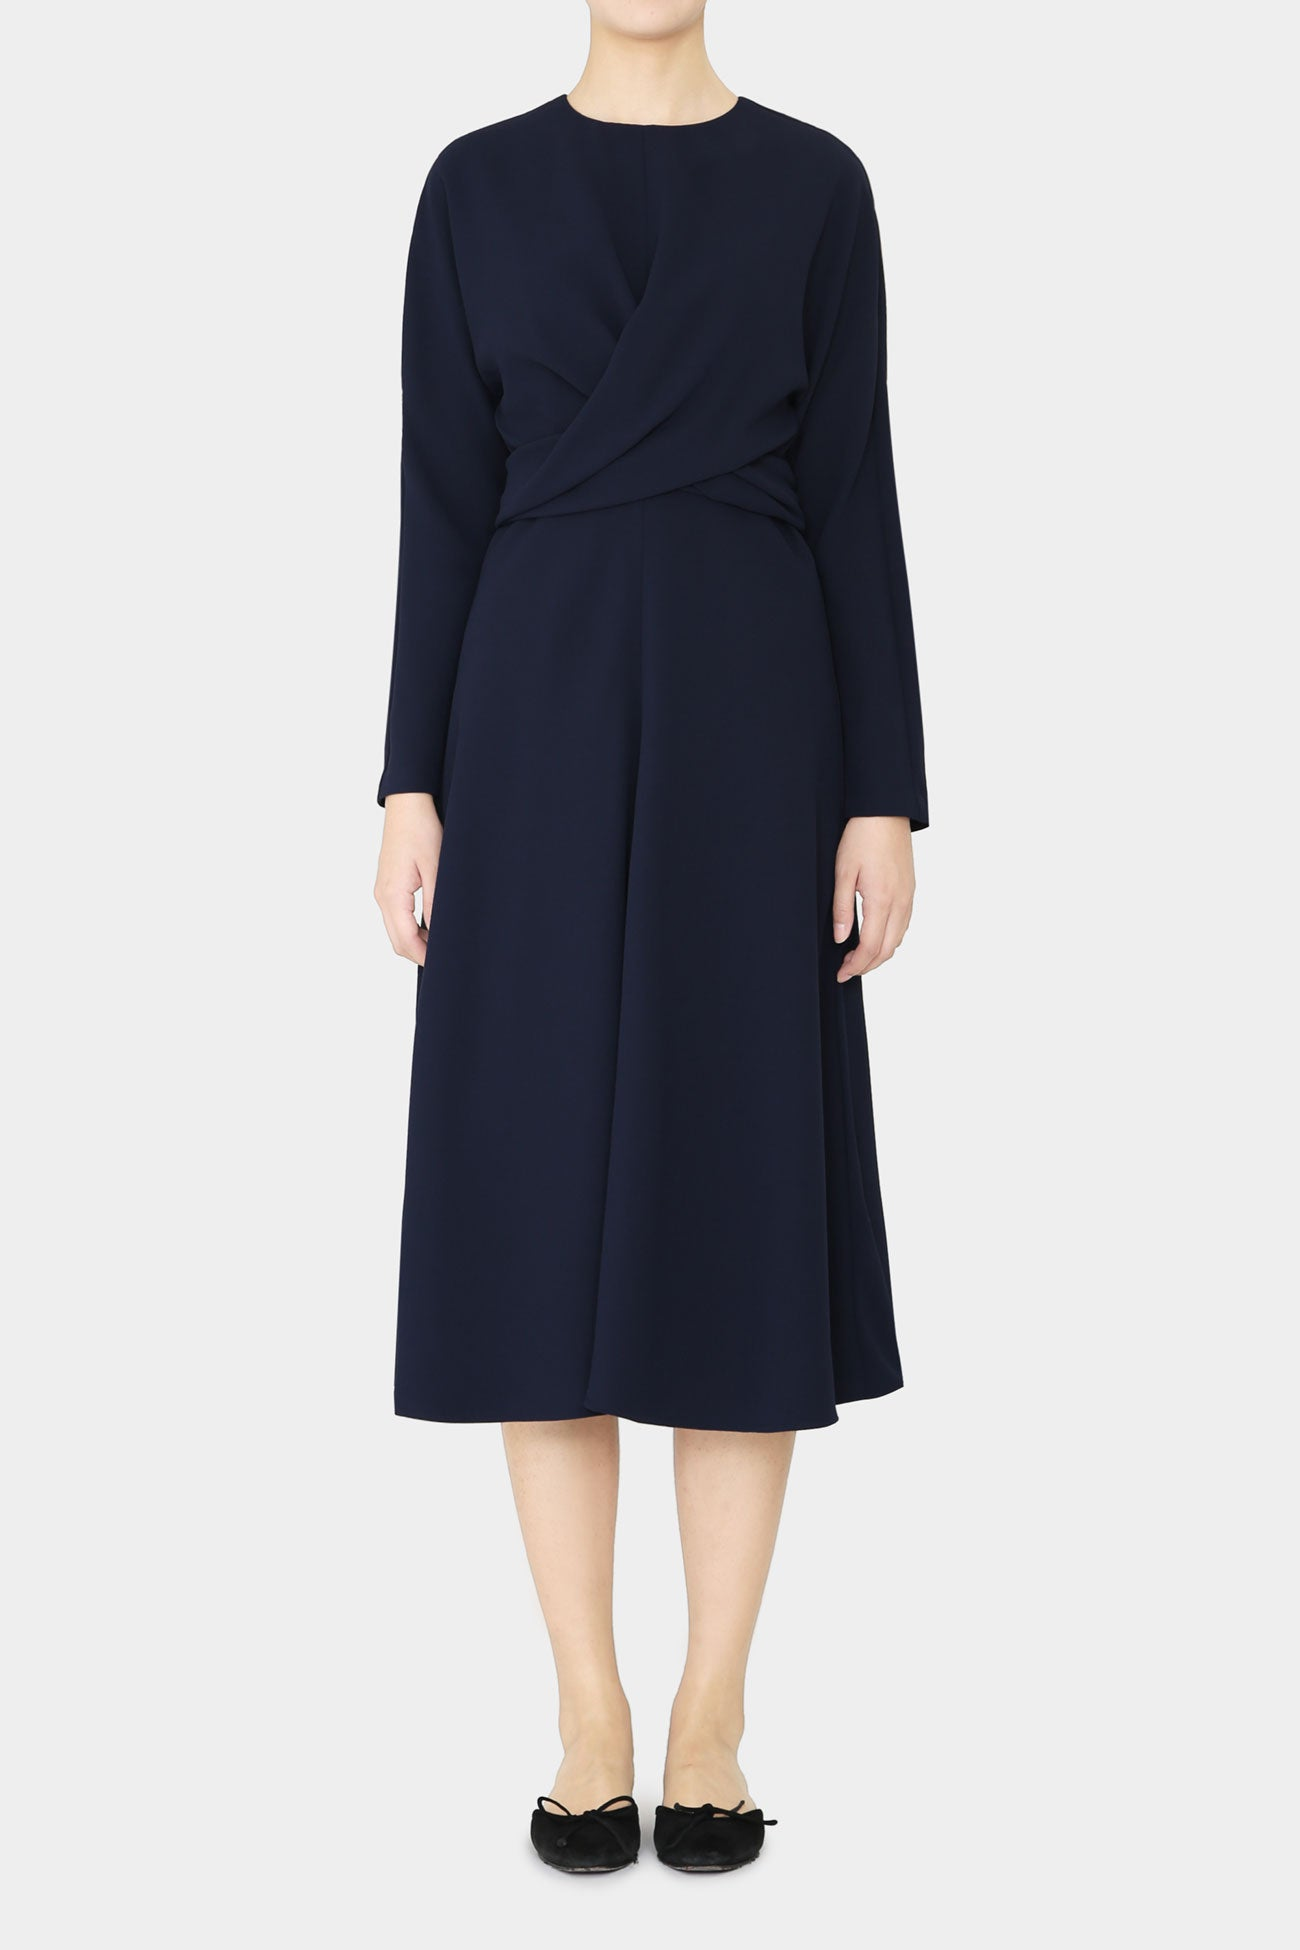 NAVY ELSE WRAP DRESS